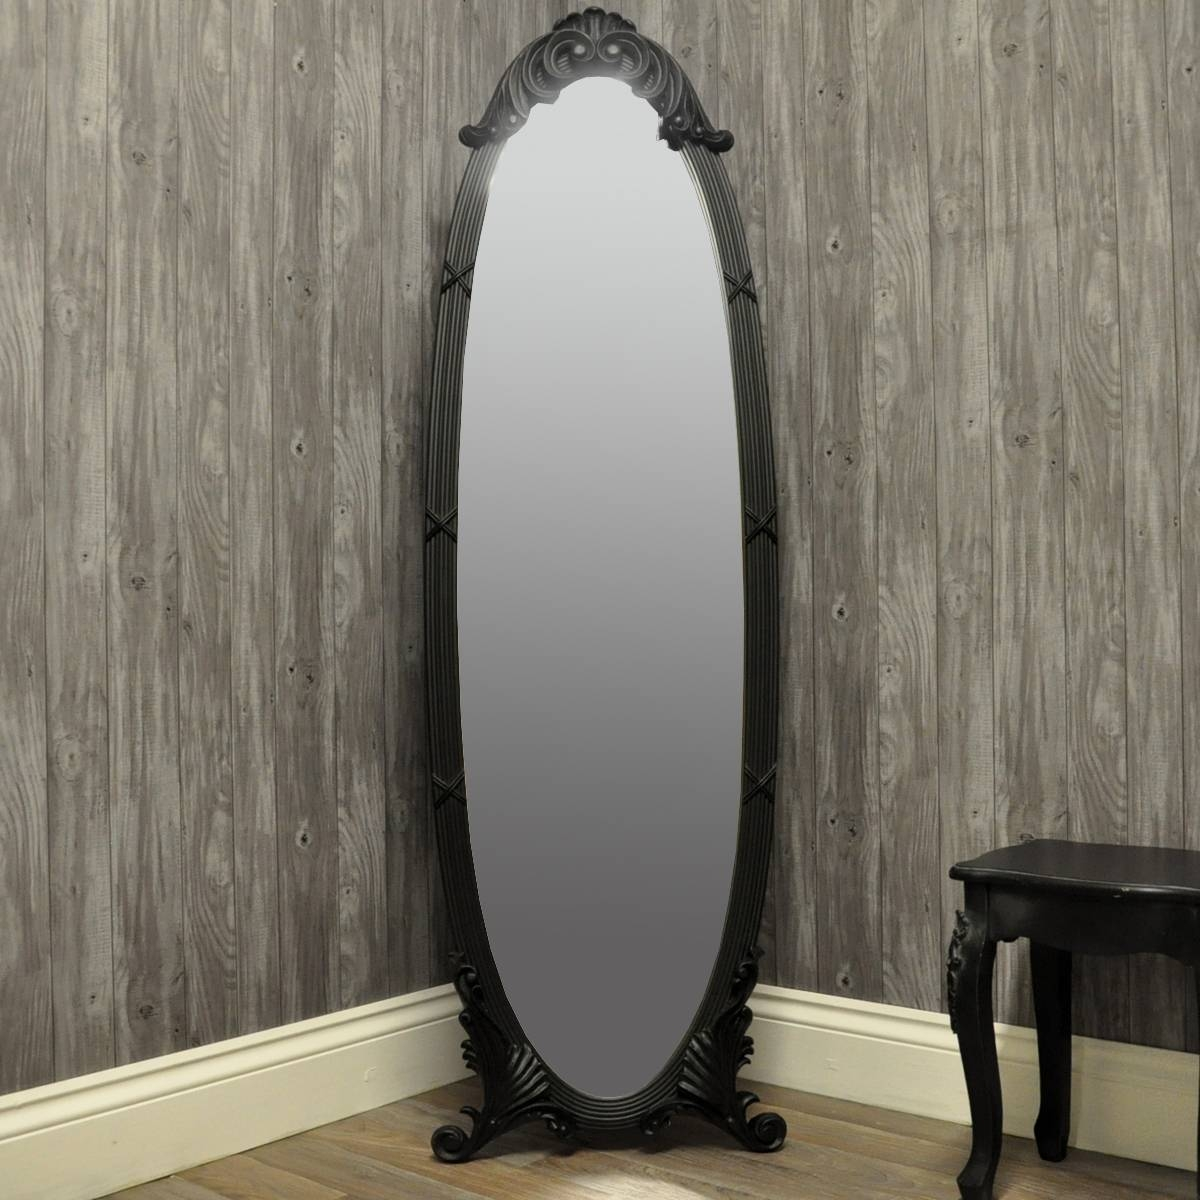 2019 Best Of French Style Full Length Mirrors